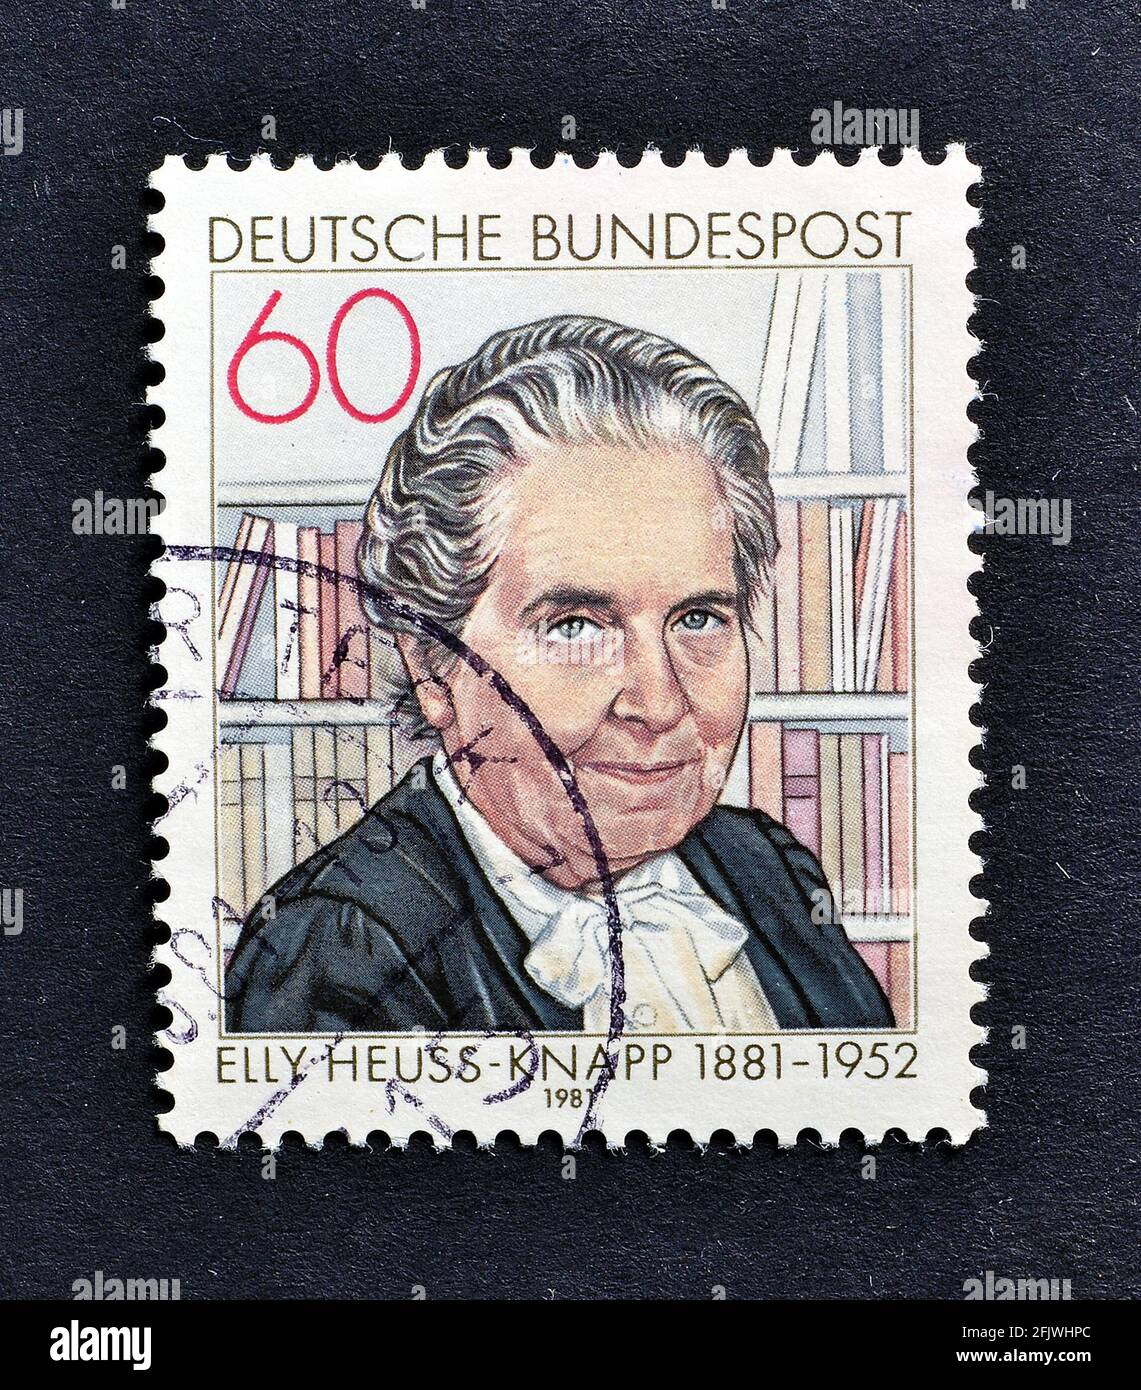 Cancelled postage stamp printed by Germany, that shows German politician Elly Heuss-Knapp (1881-1952), circa 1981. Stock Photo